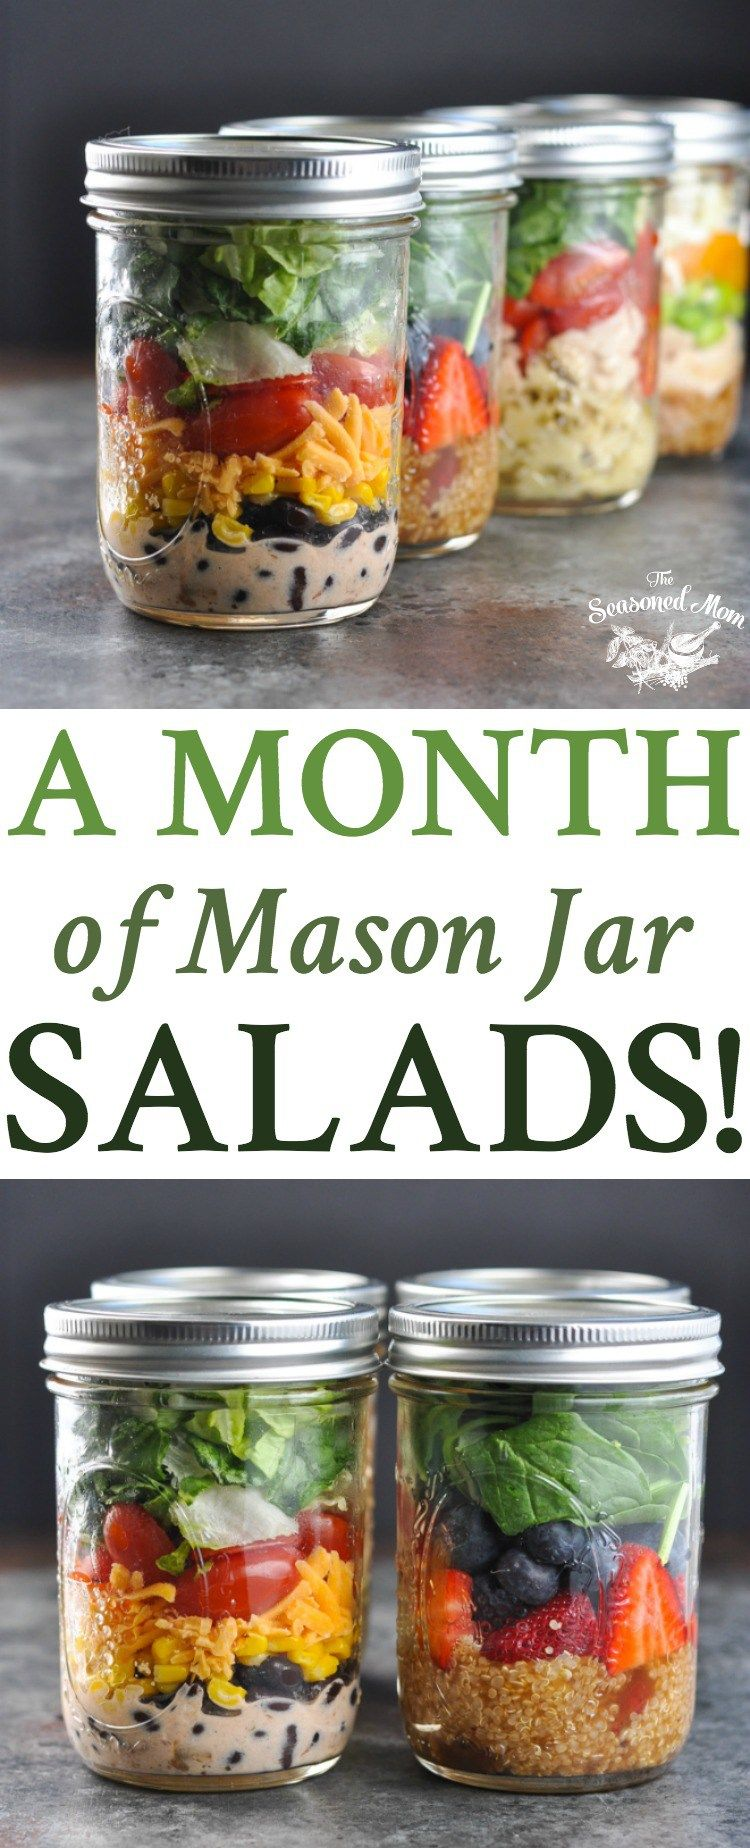 A month of mason jar salads jar salad and meal prep recipes herbalife weight loss amazing exercises to lose weightwhat is the best weight loss exercise program healthy food plan to lose weight fasthealthy lunch forumfinder Images